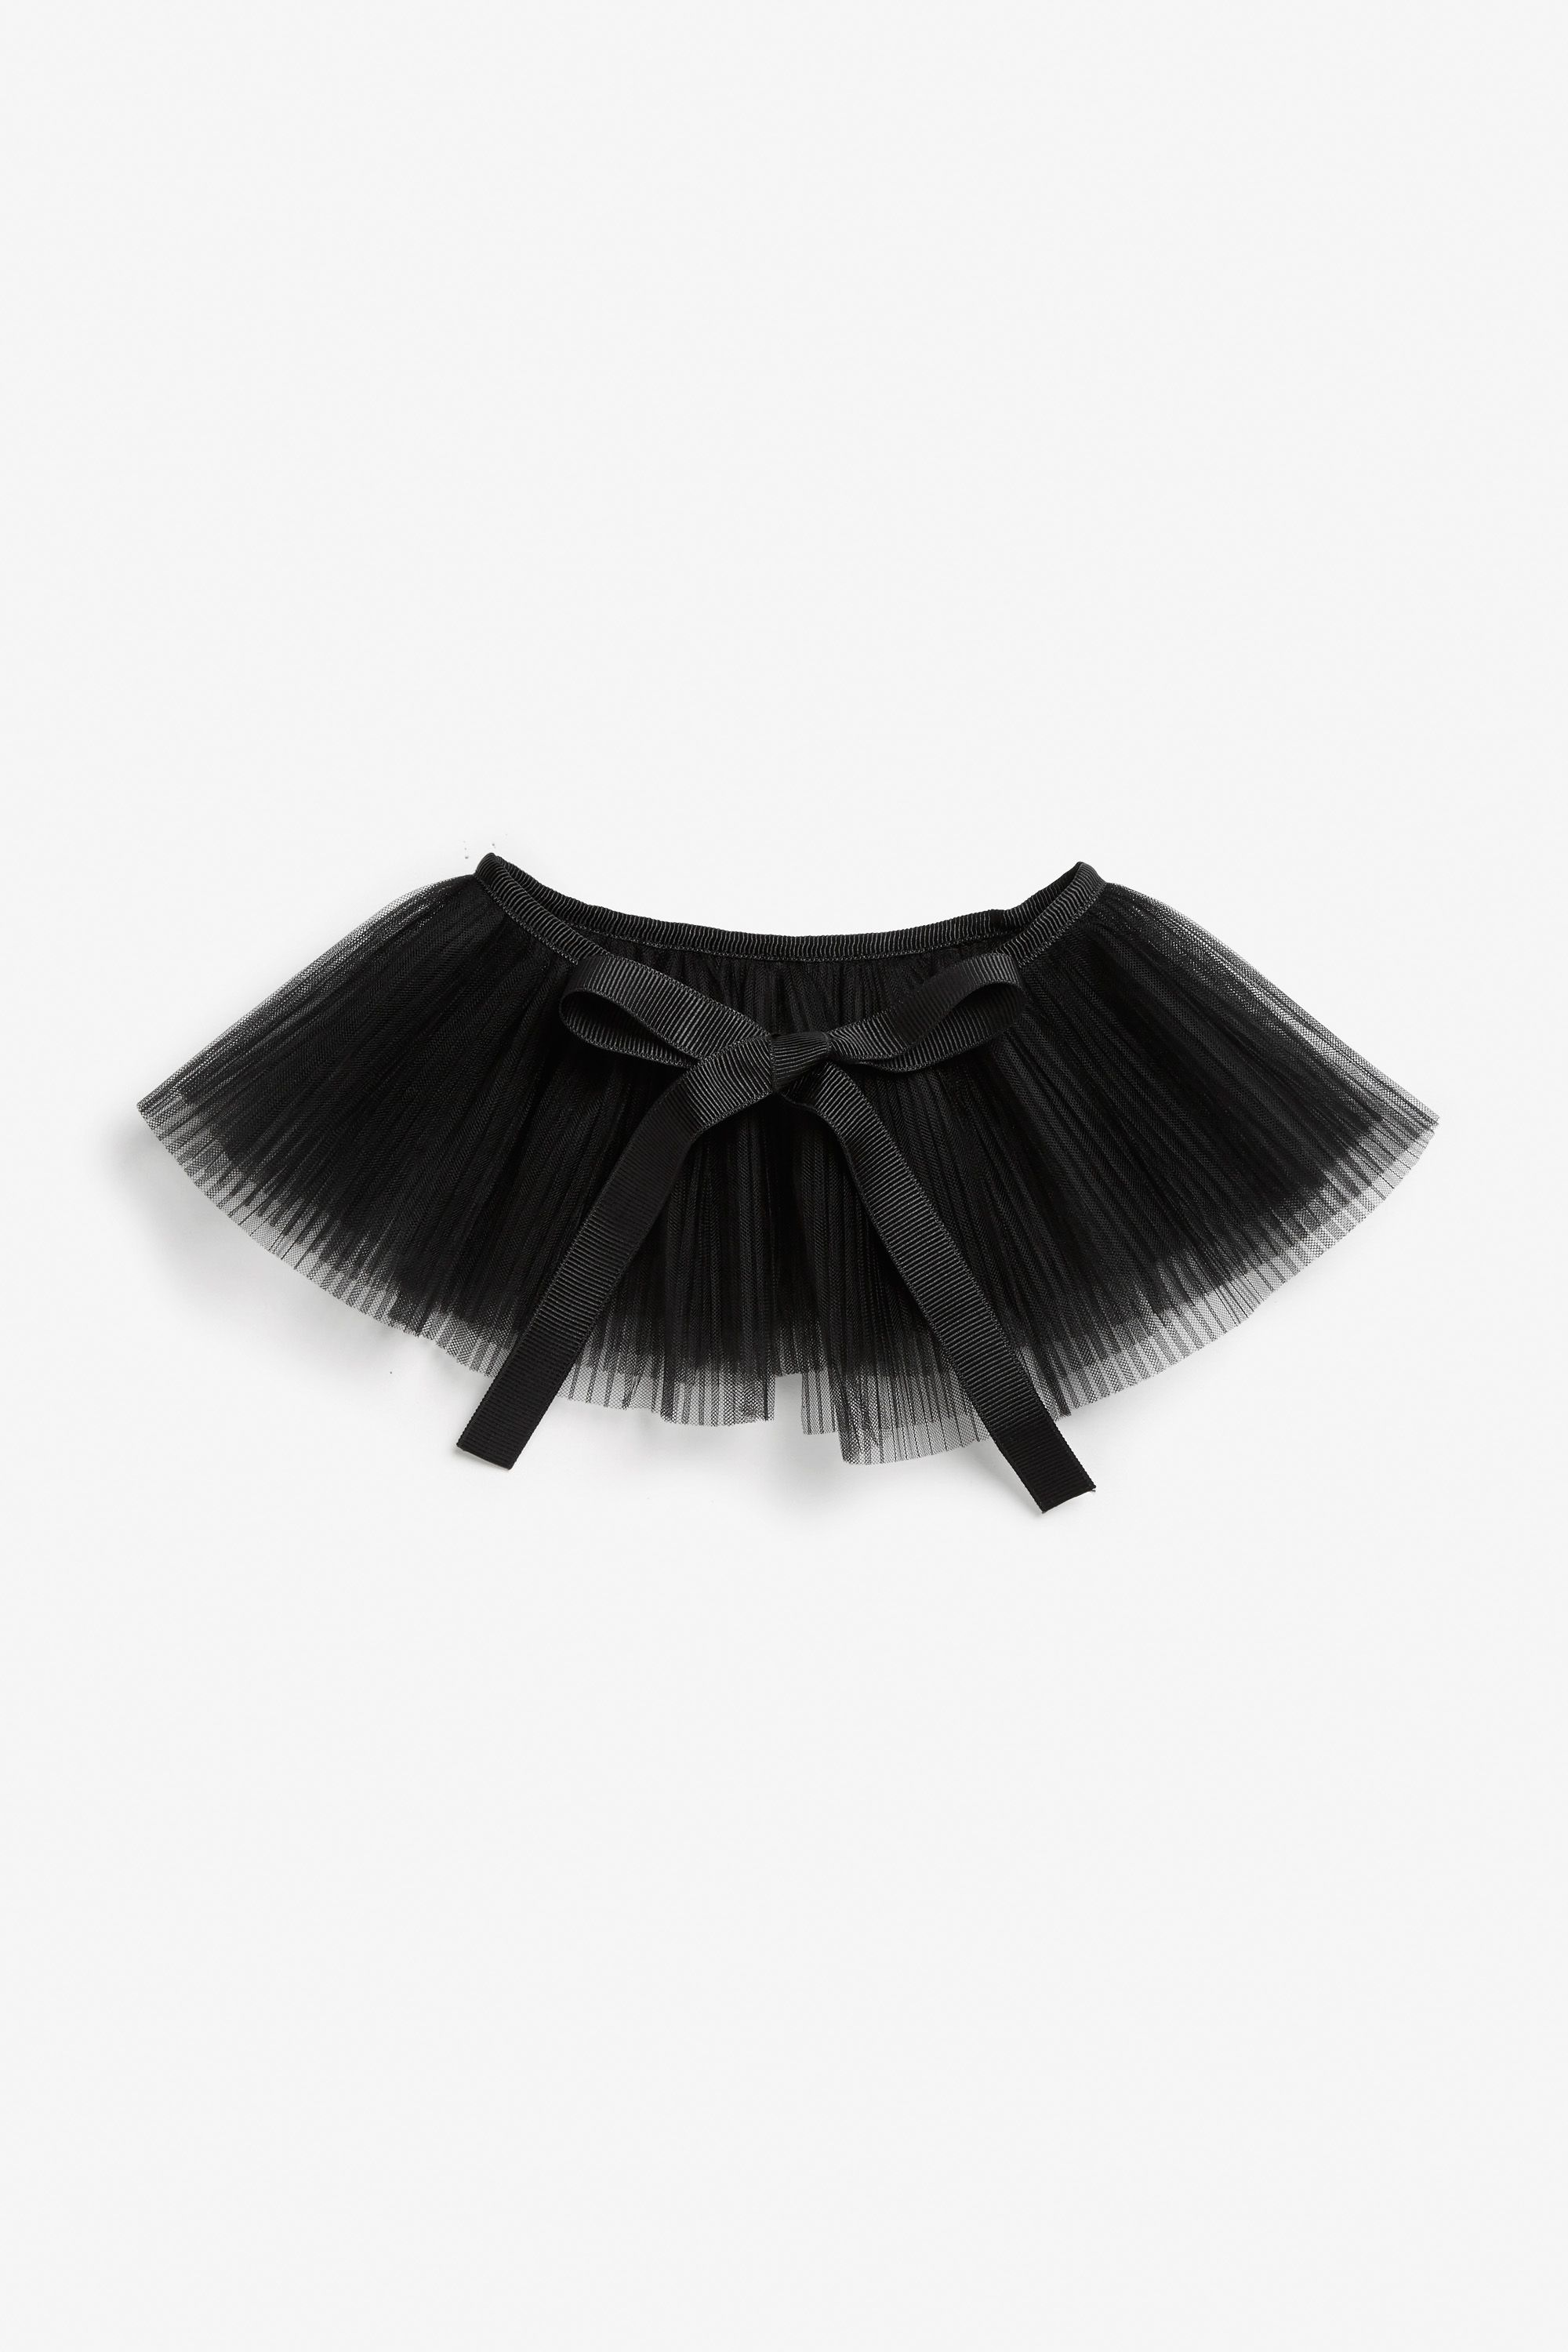 Borrow a little black from the goth trend with this black mesh collar with a simple ribbon tie.